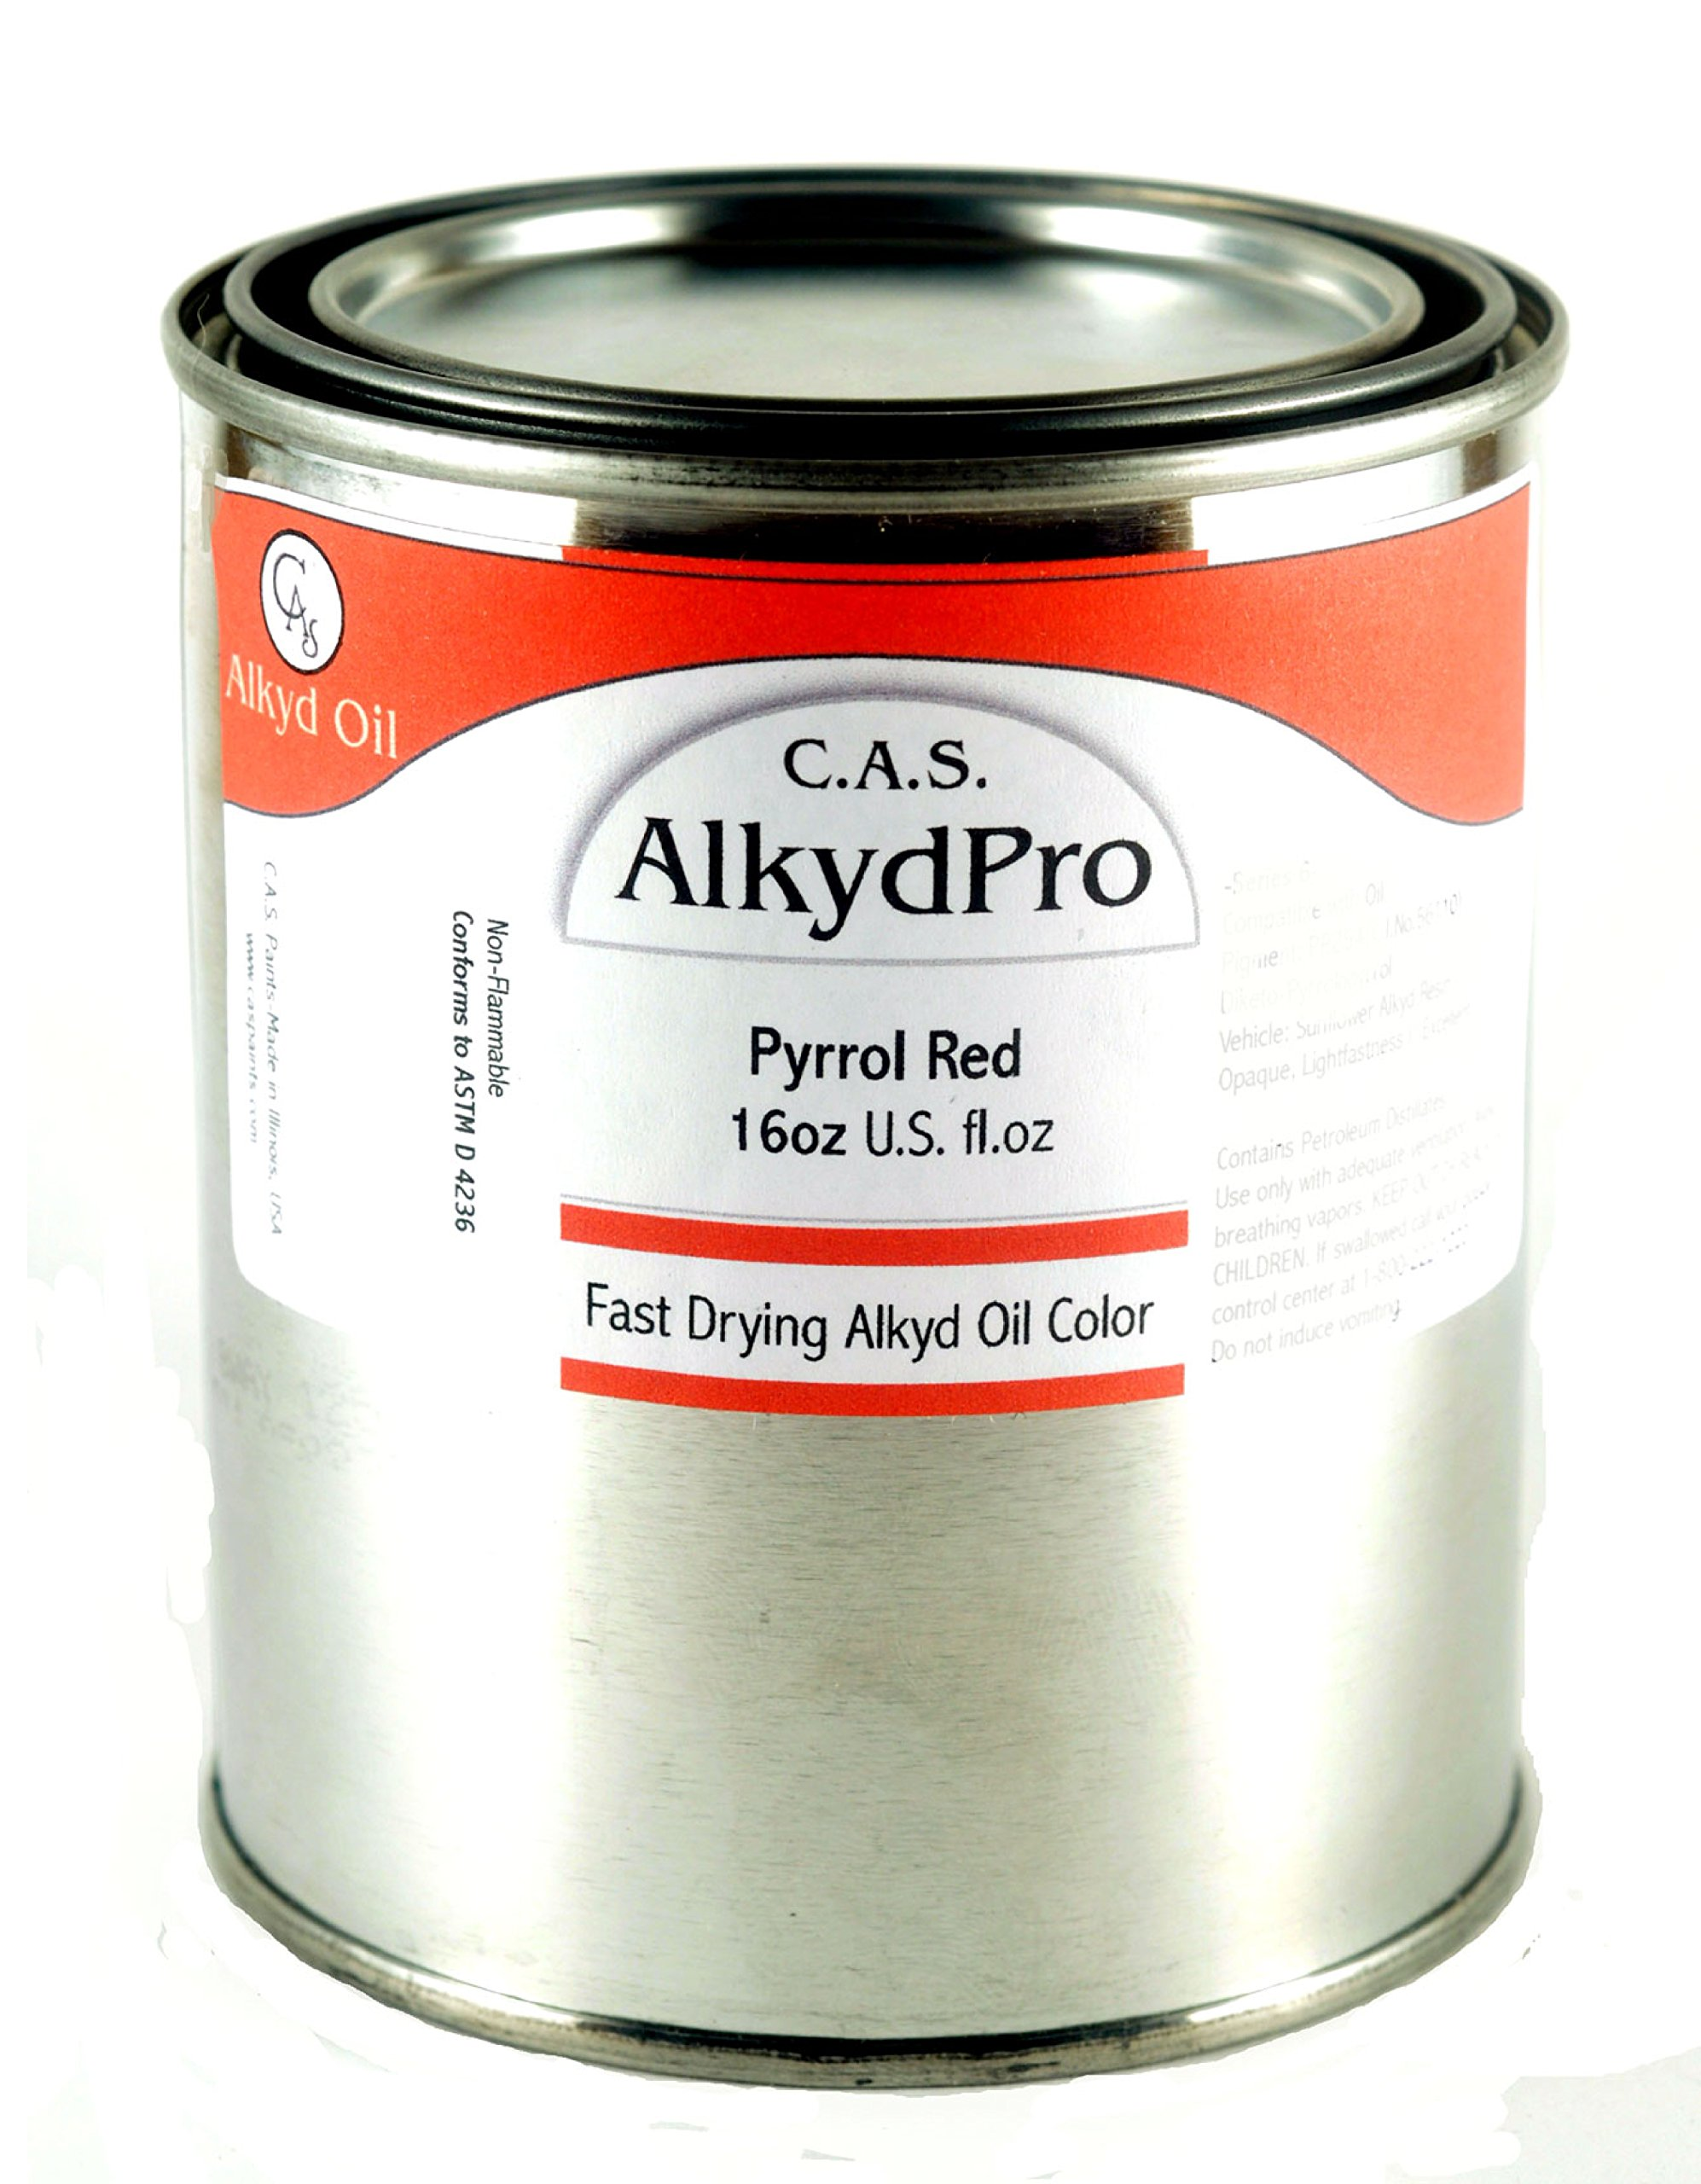 C.A.S. Paints AlkydPro Fast-Drying Oil Color Paint Can, 16-Ounce, Pyrrole Red